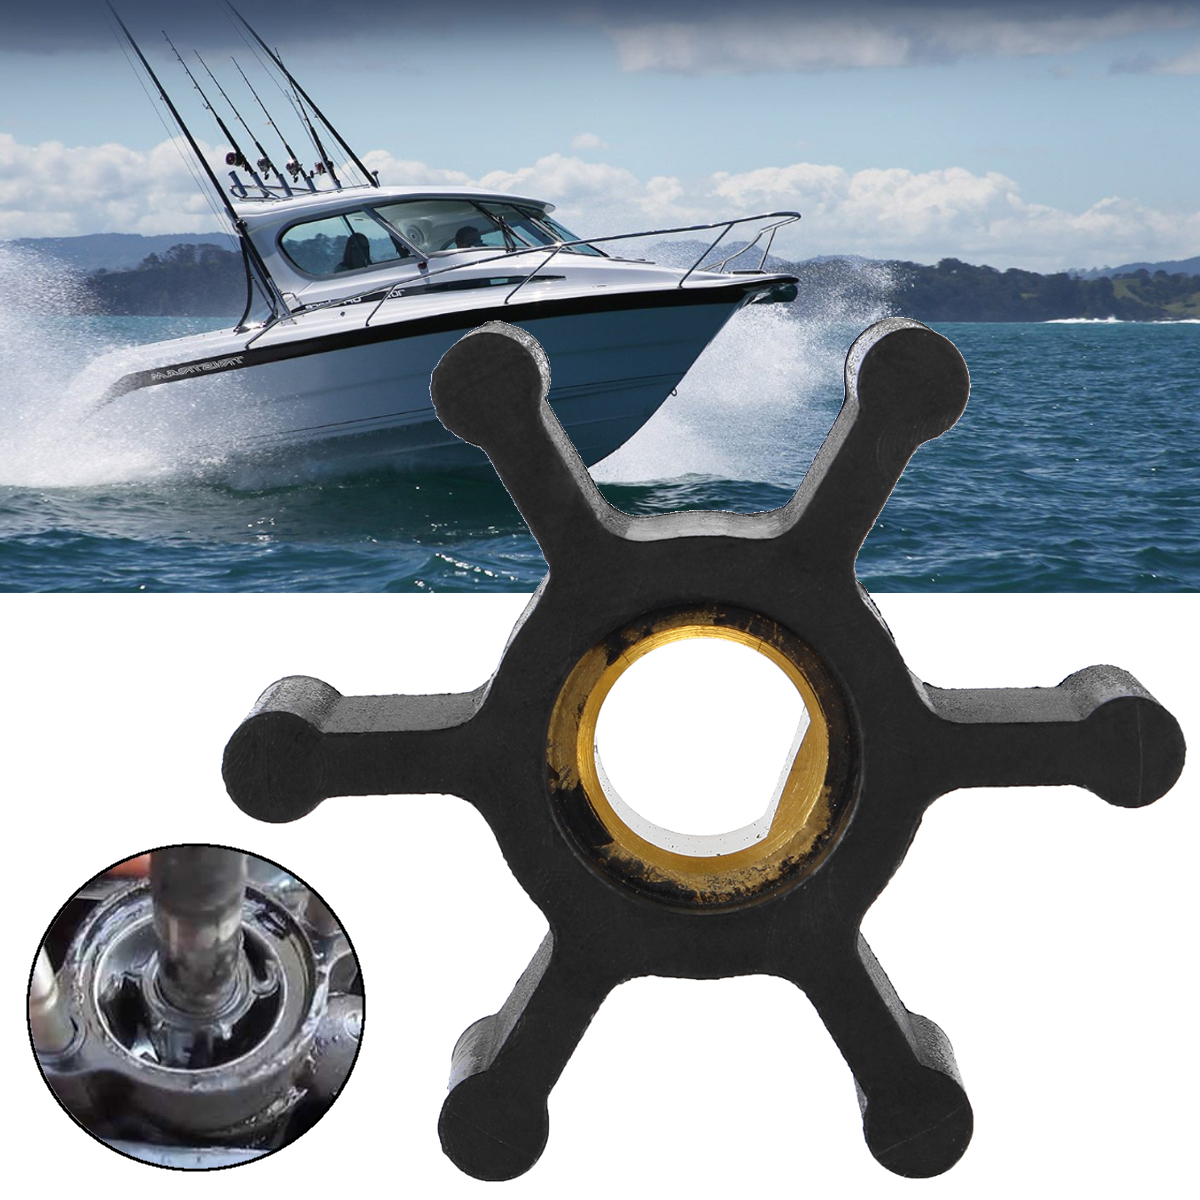 For FP0F360AC Flotec Outboard Motor RP0001077 & FP003414S-01 Water Pump Impeller for PC1 & PC2 66059-WYN1 Black 35mm Diameter